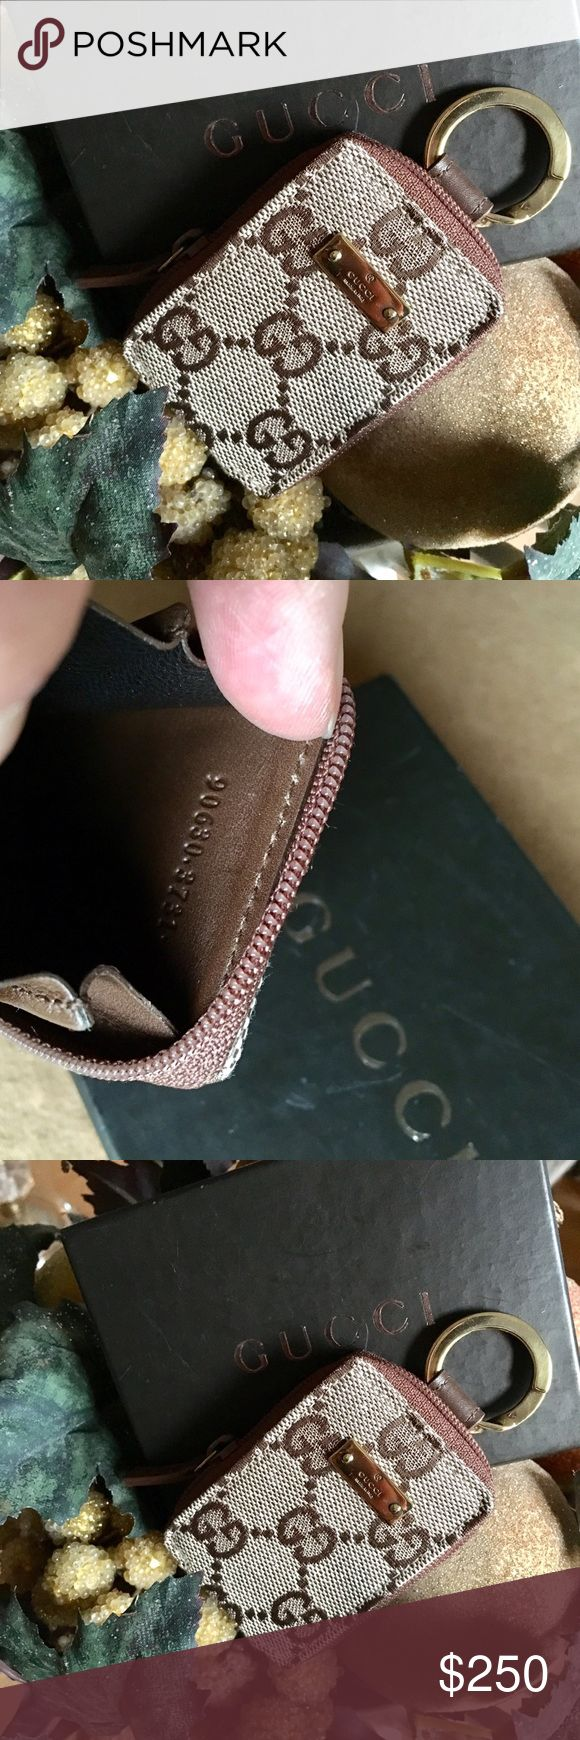 Gucci coin purse key ring Practically new- owned by me, and sadly, not used. I came across it in my dresser recently when spring cleaning so I will let it go. Gorgeous signature canvas coin purse with brown leather interior. Accented by a gleaming gold key ring. Please see second photo for Gucci code. Comes in the original box. Gucci Accessories Key & Card Holders